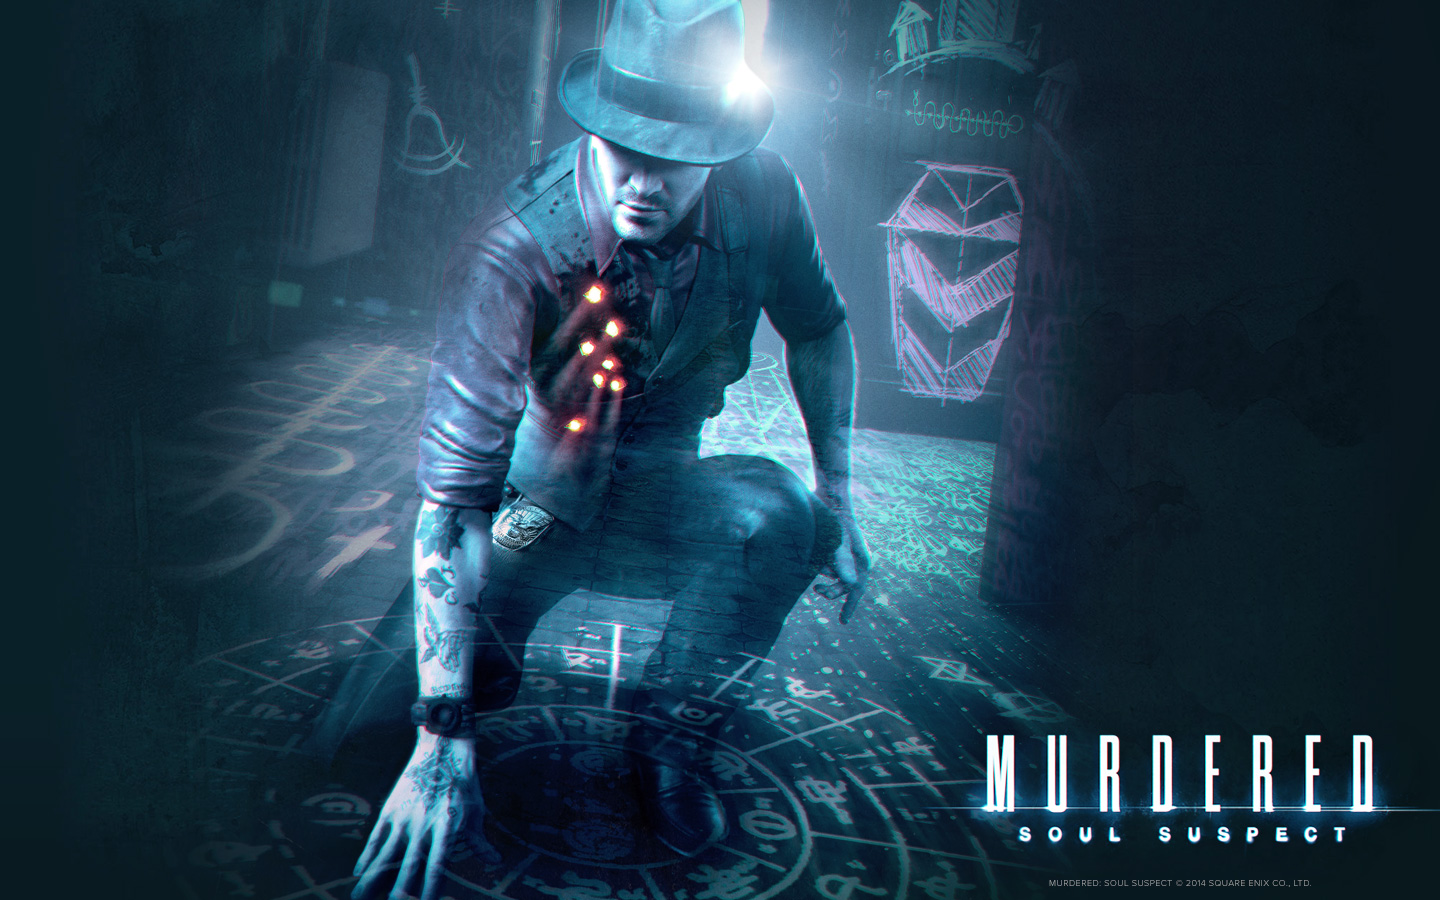 Review: Murdered Soul Suspect